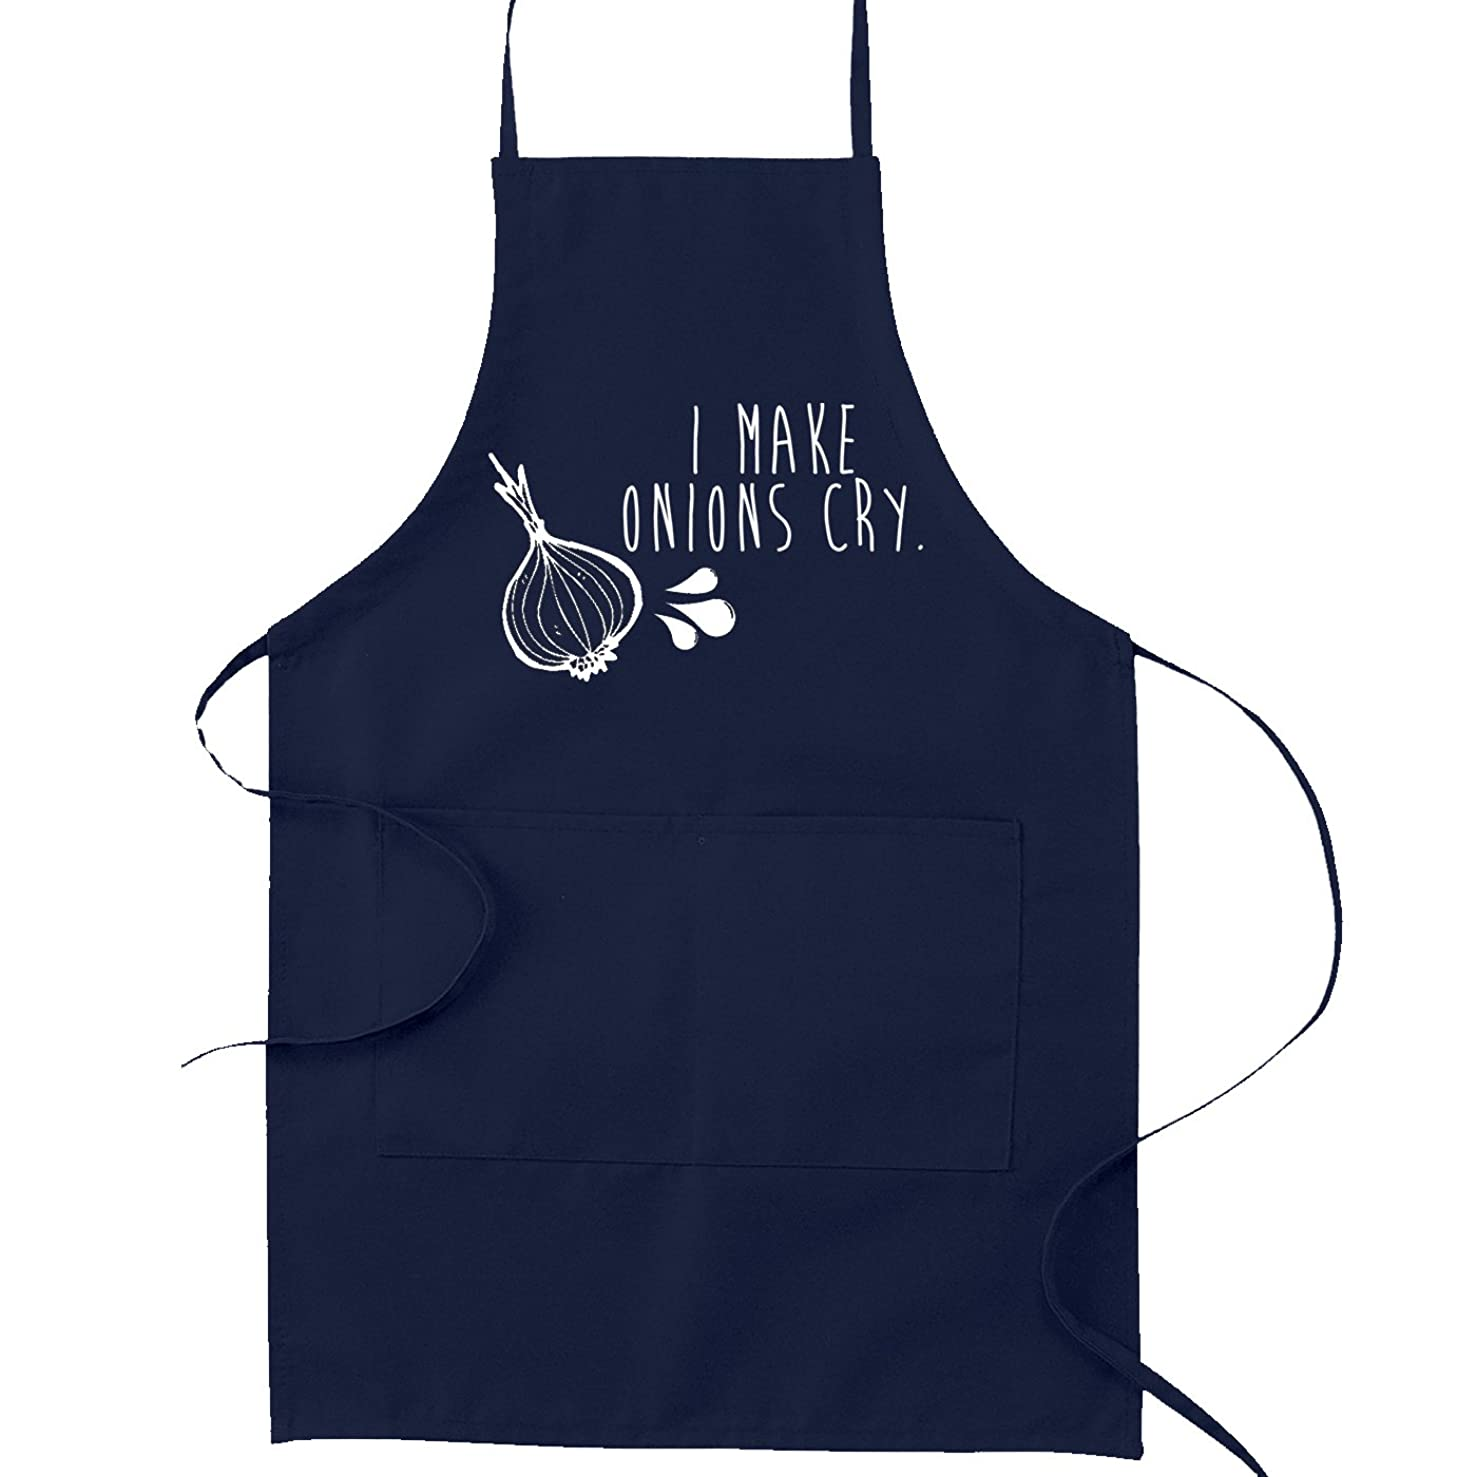 I Make Onions Cry Funny Parody Cooking Baking Kitchen Apron - Navy Blue